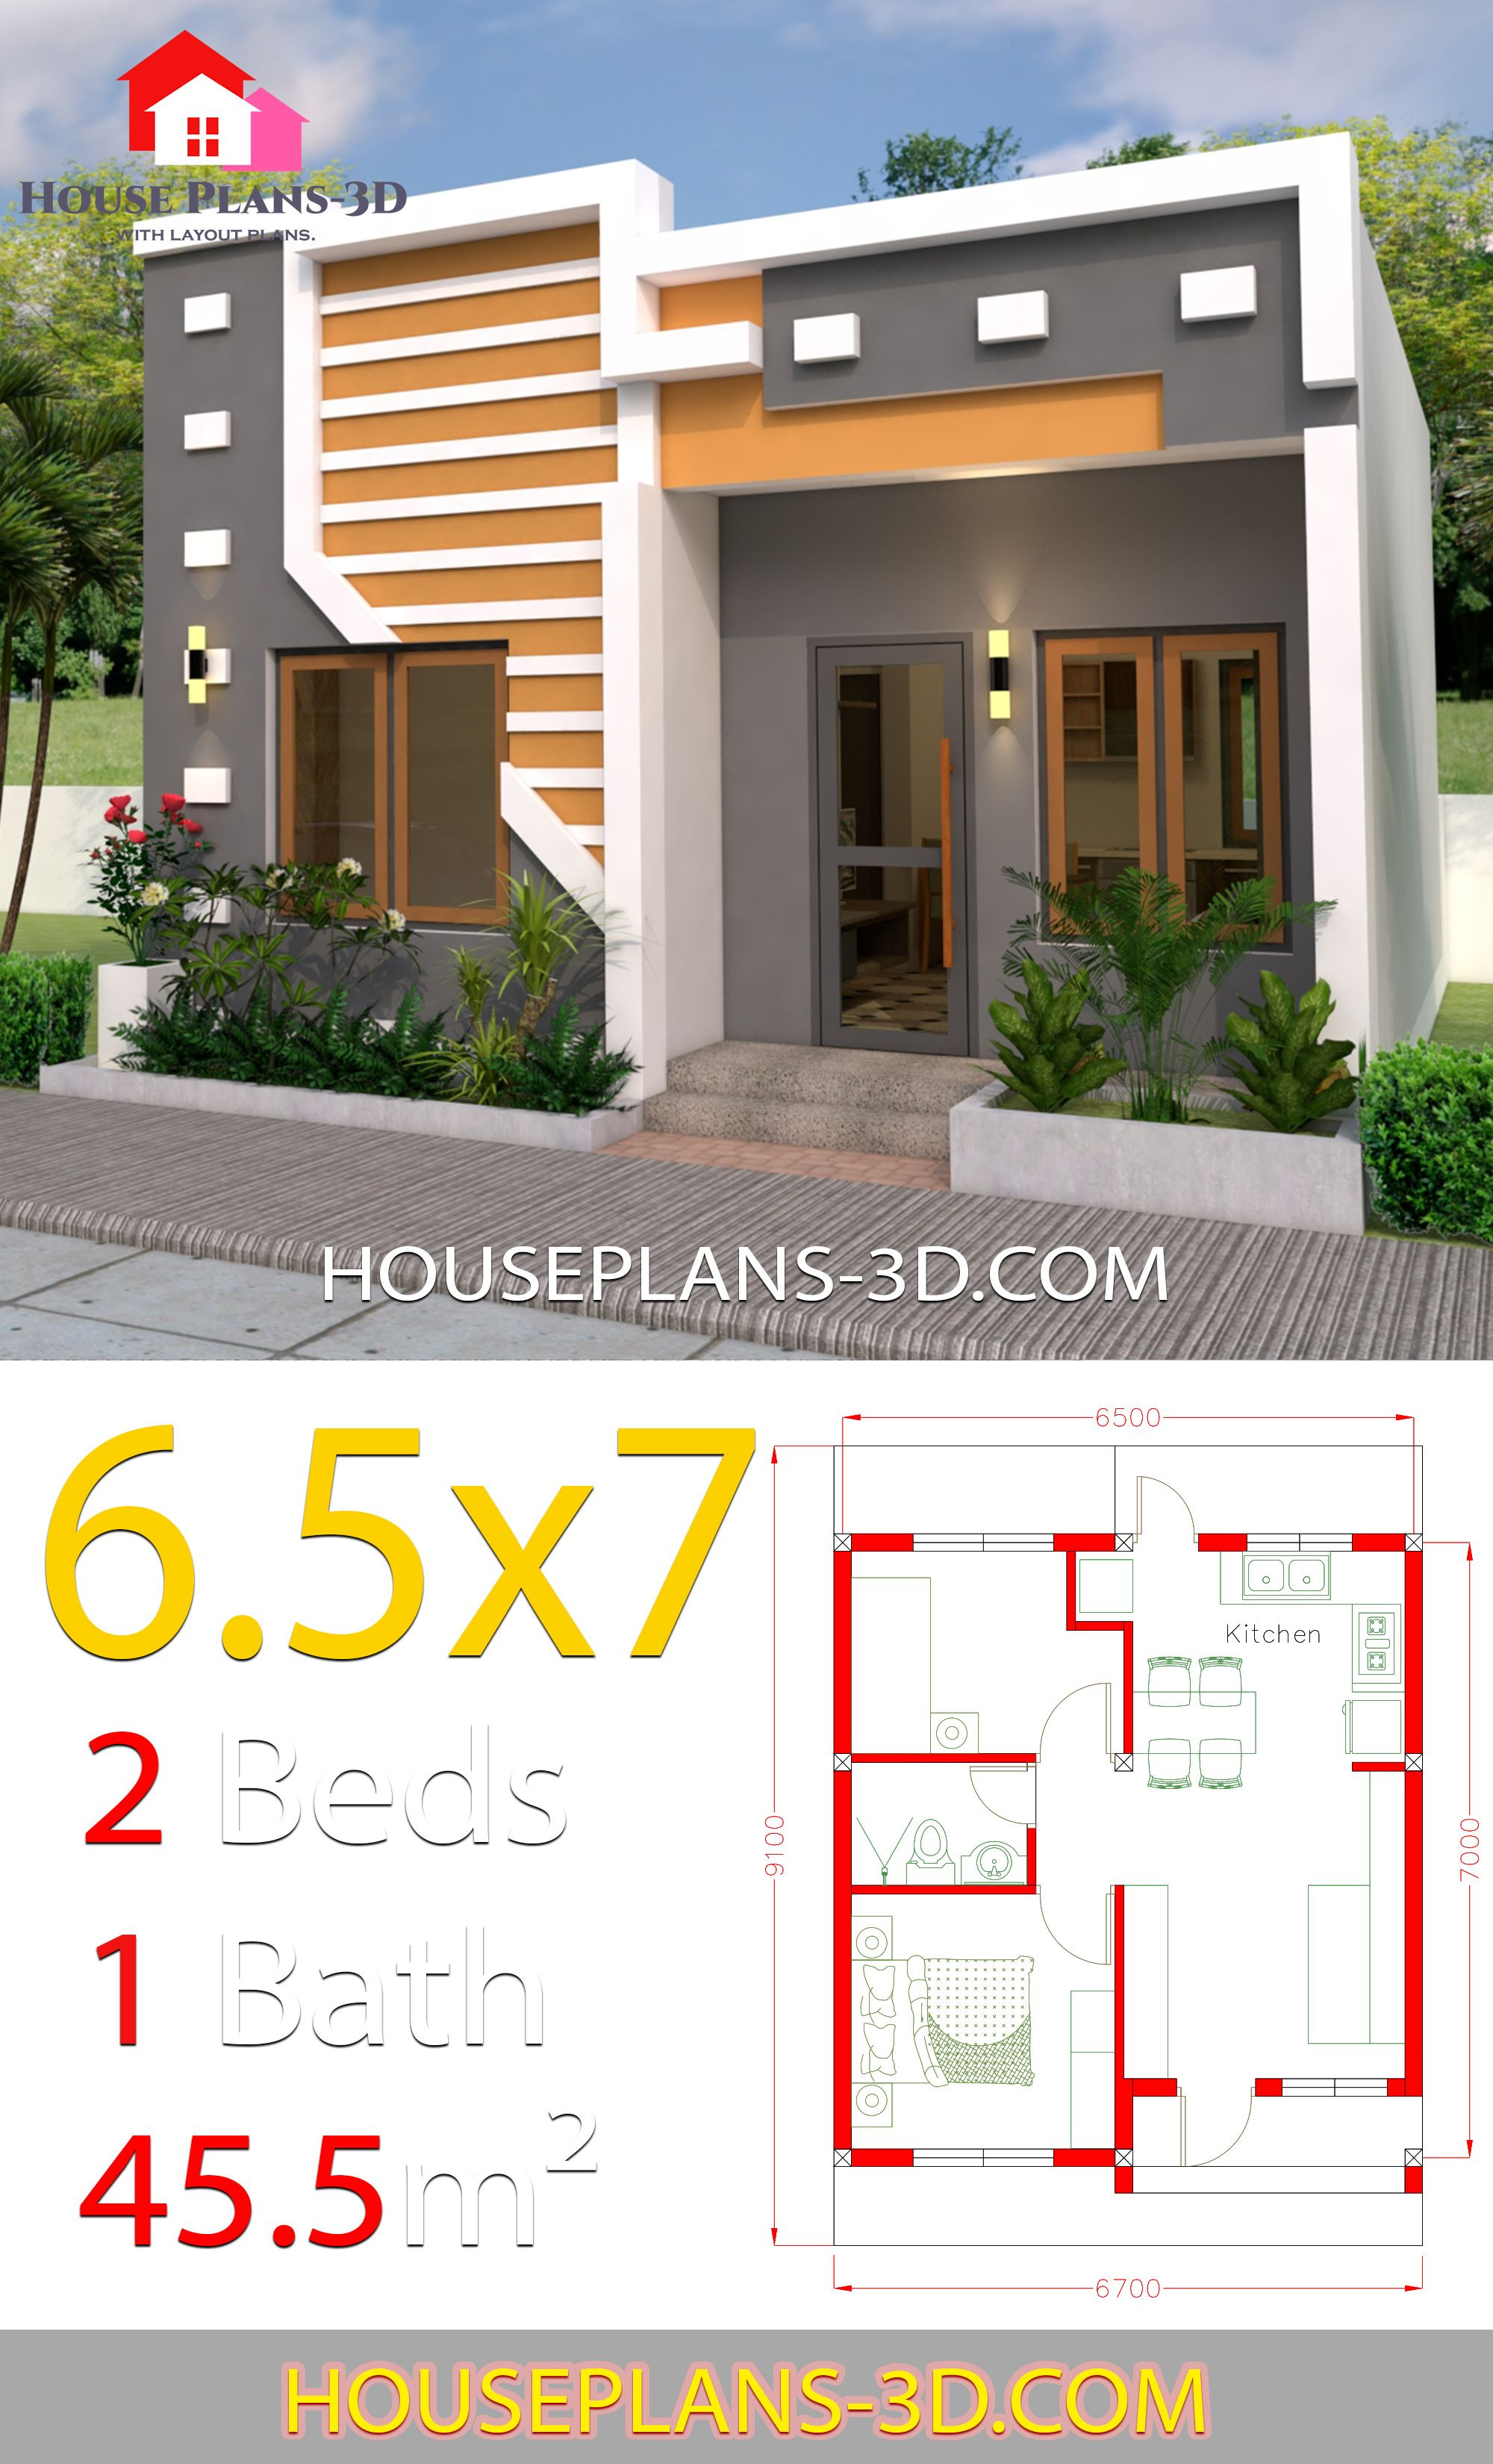 One Floor House Design Plans 3d Luxury Small House Design 6 5x7 with 2 Bedrooms Full Plans